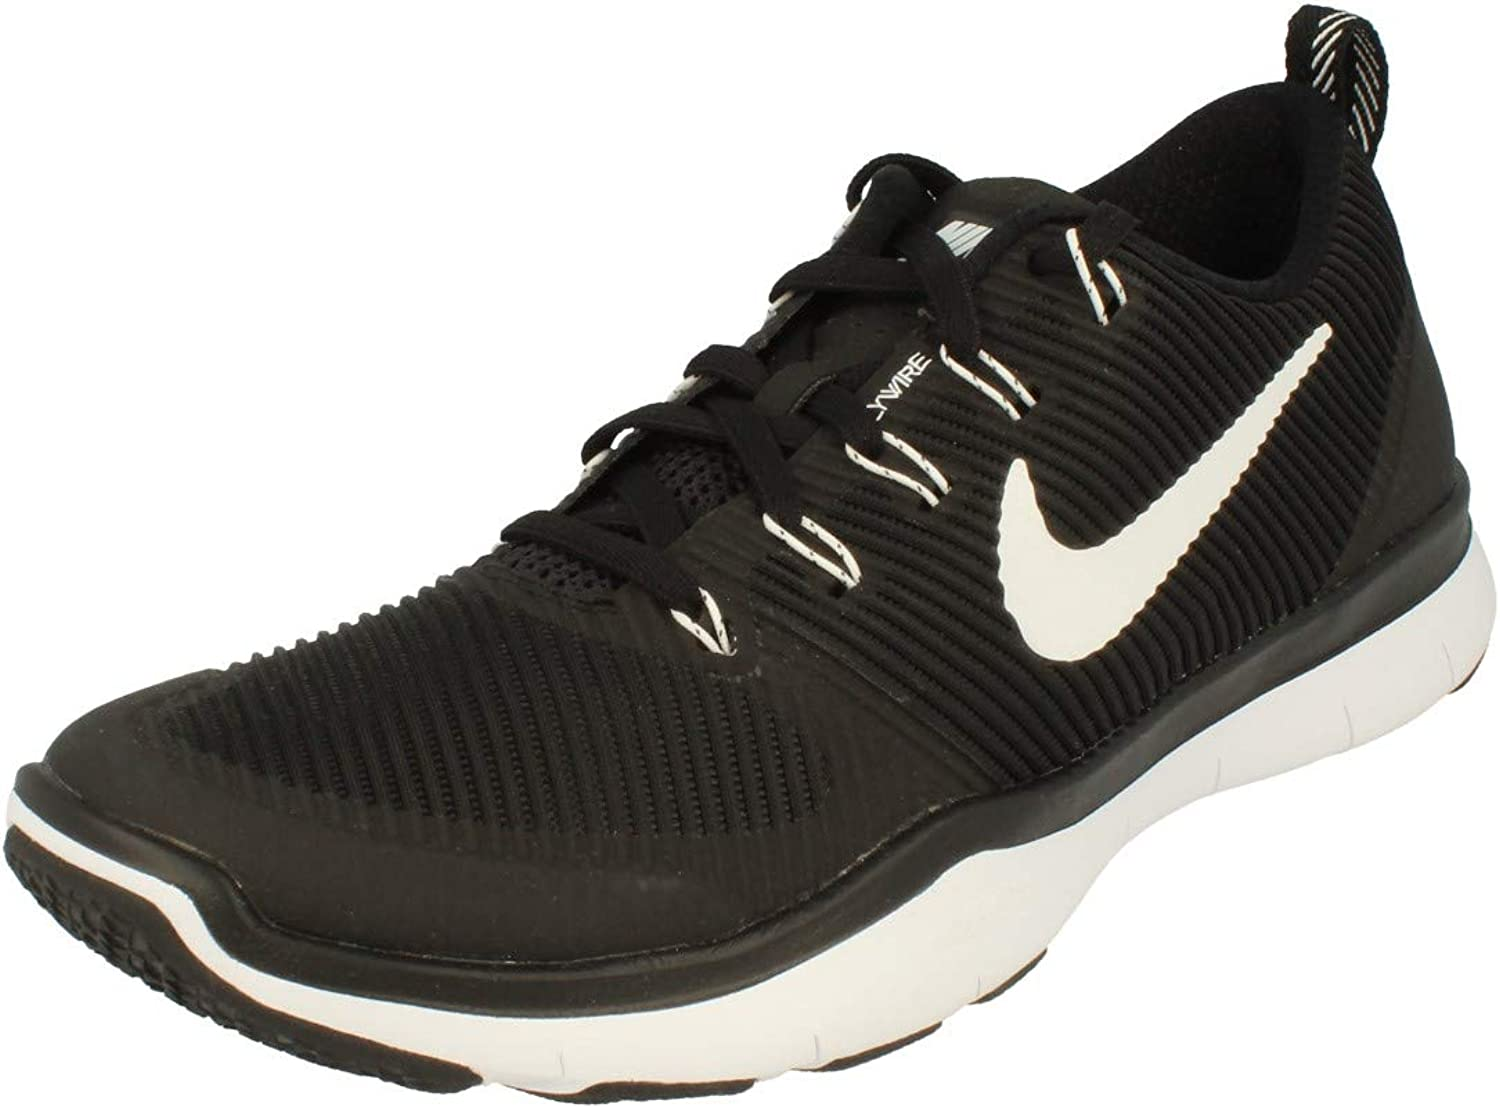 Nike Men s Free Train Versatility Running Shoes